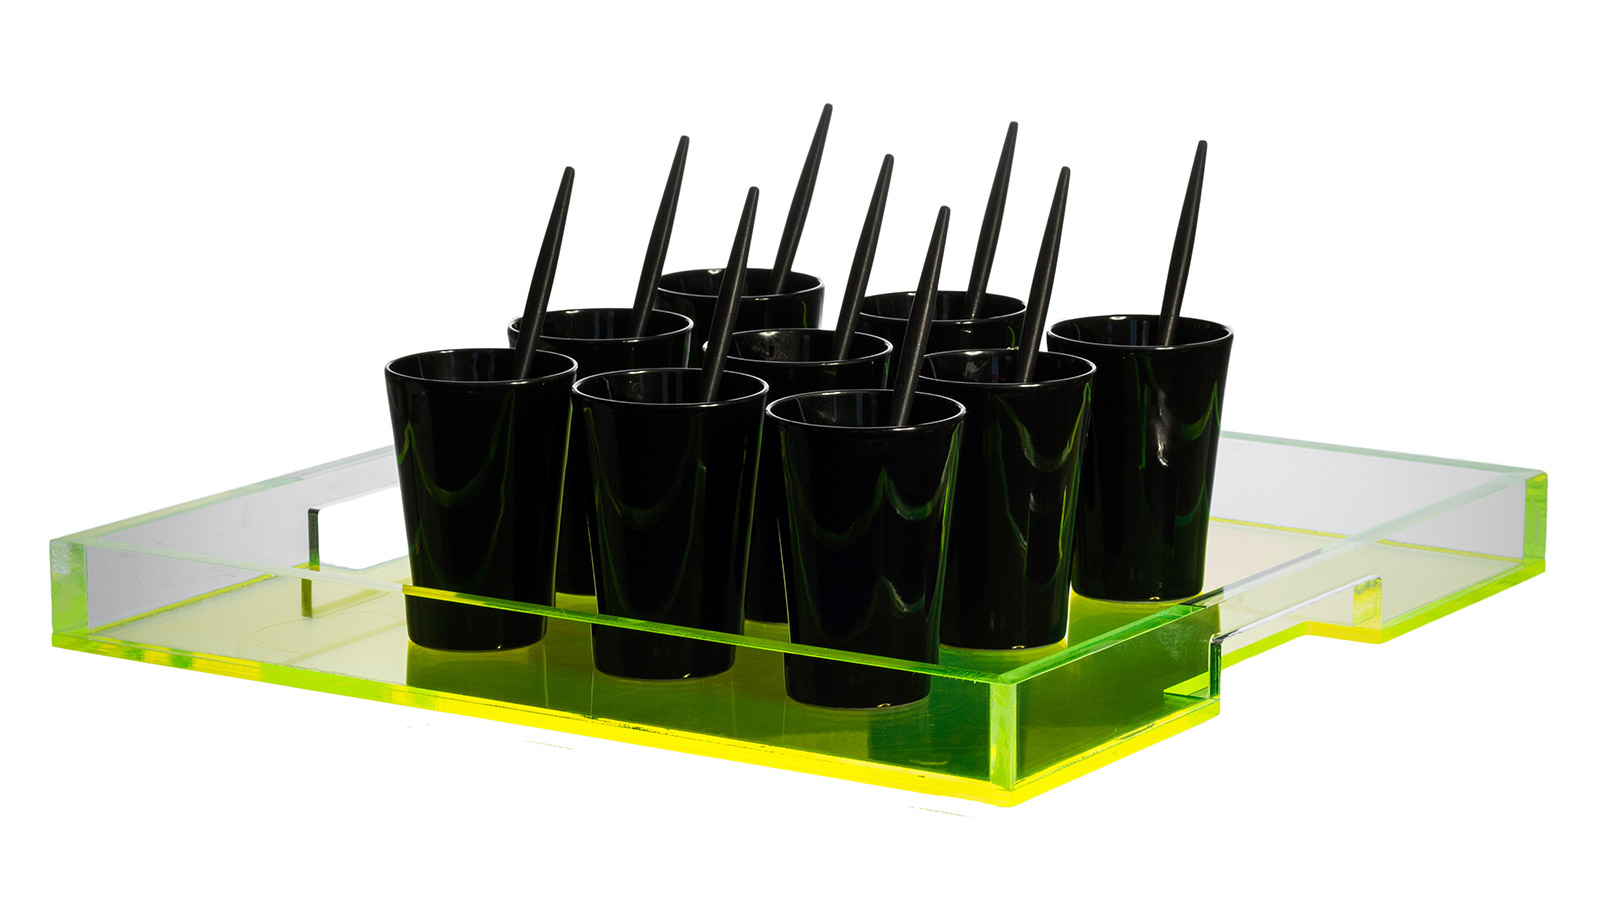 Square canap tray for Canape platters